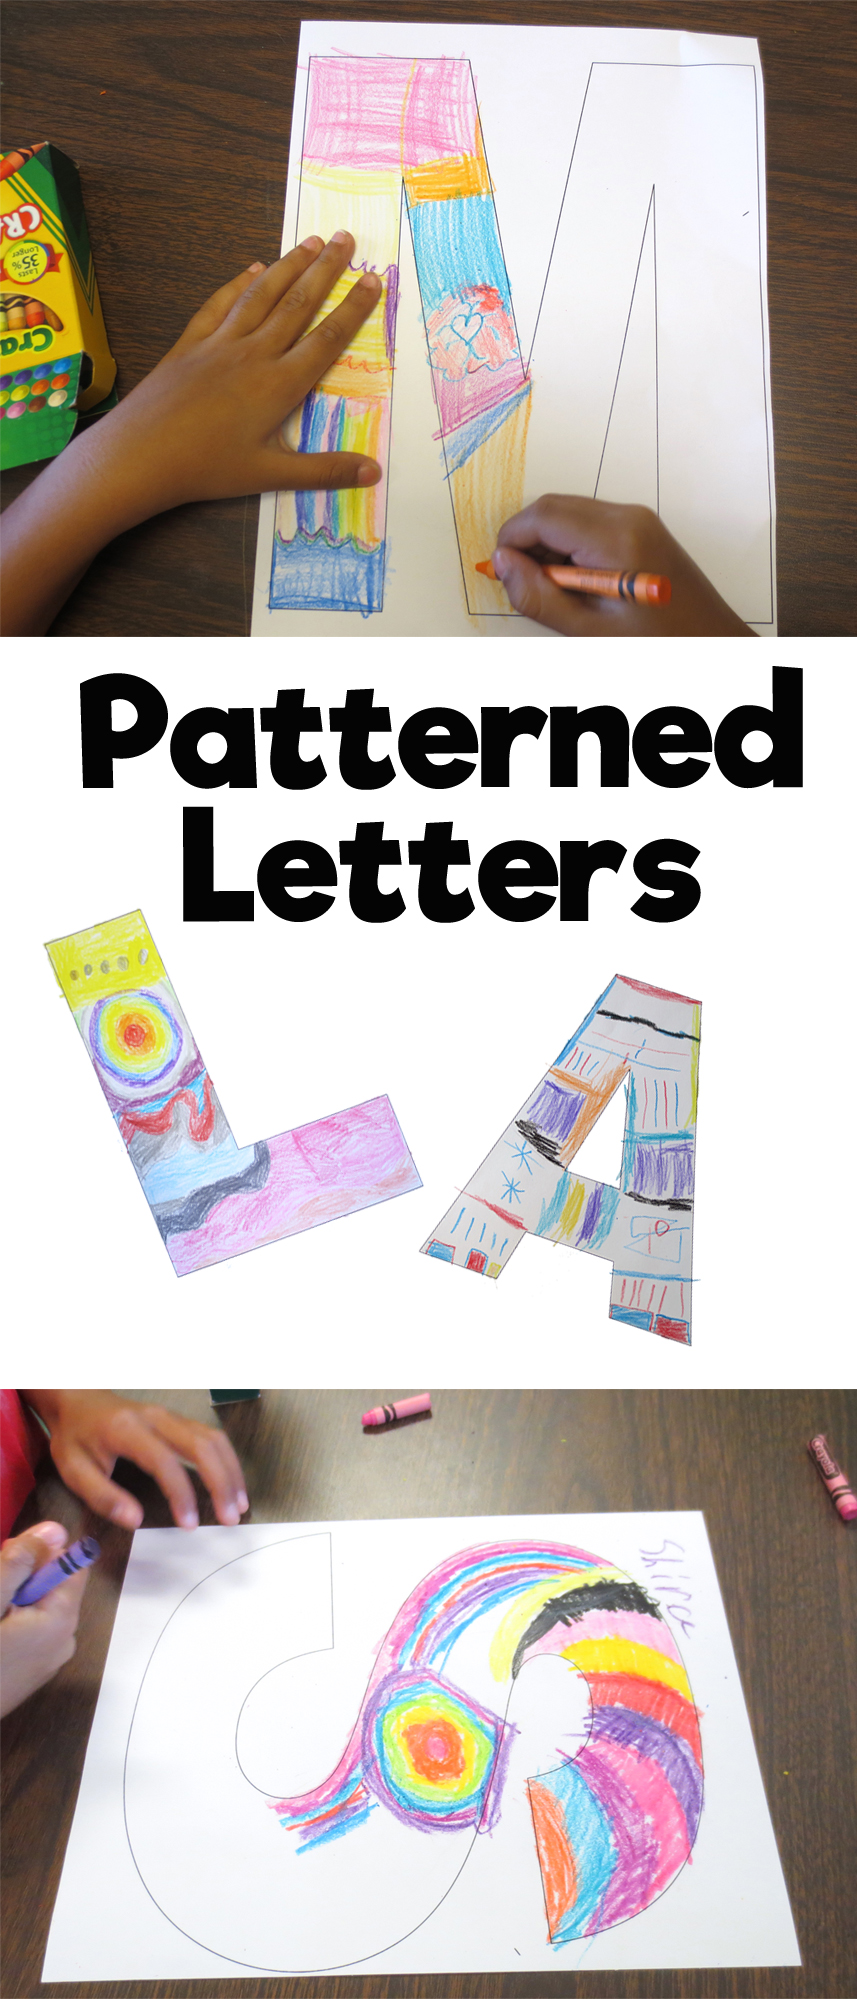 Patterned Letters Art Project